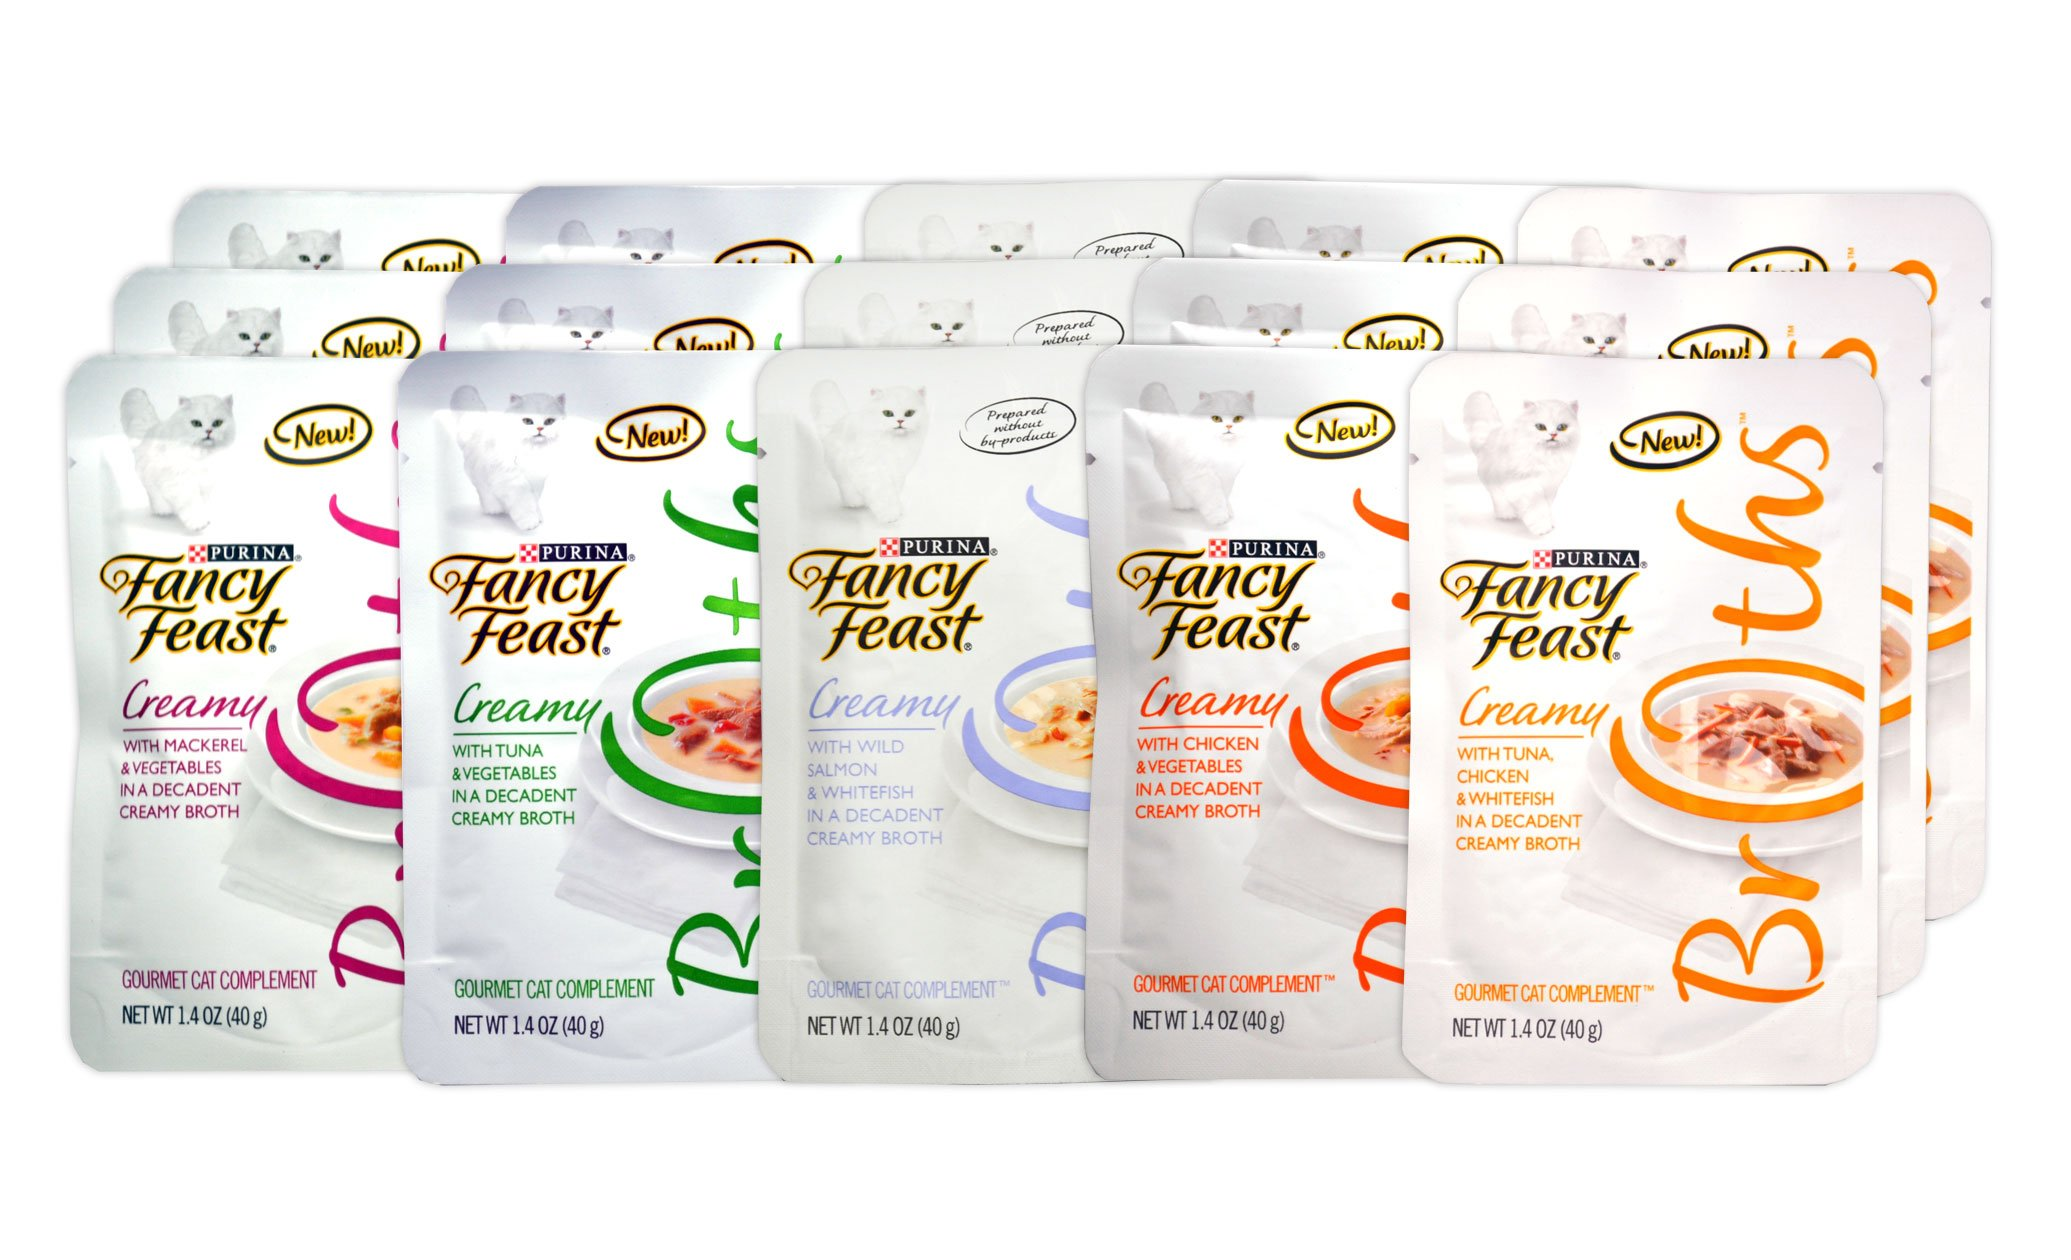 Fancy Feast Gourmet Creamy Broths Variety Pack for Cats - 5 Creamy Broth Flavors - 1.4 Oz Each (15 Total Pouches)